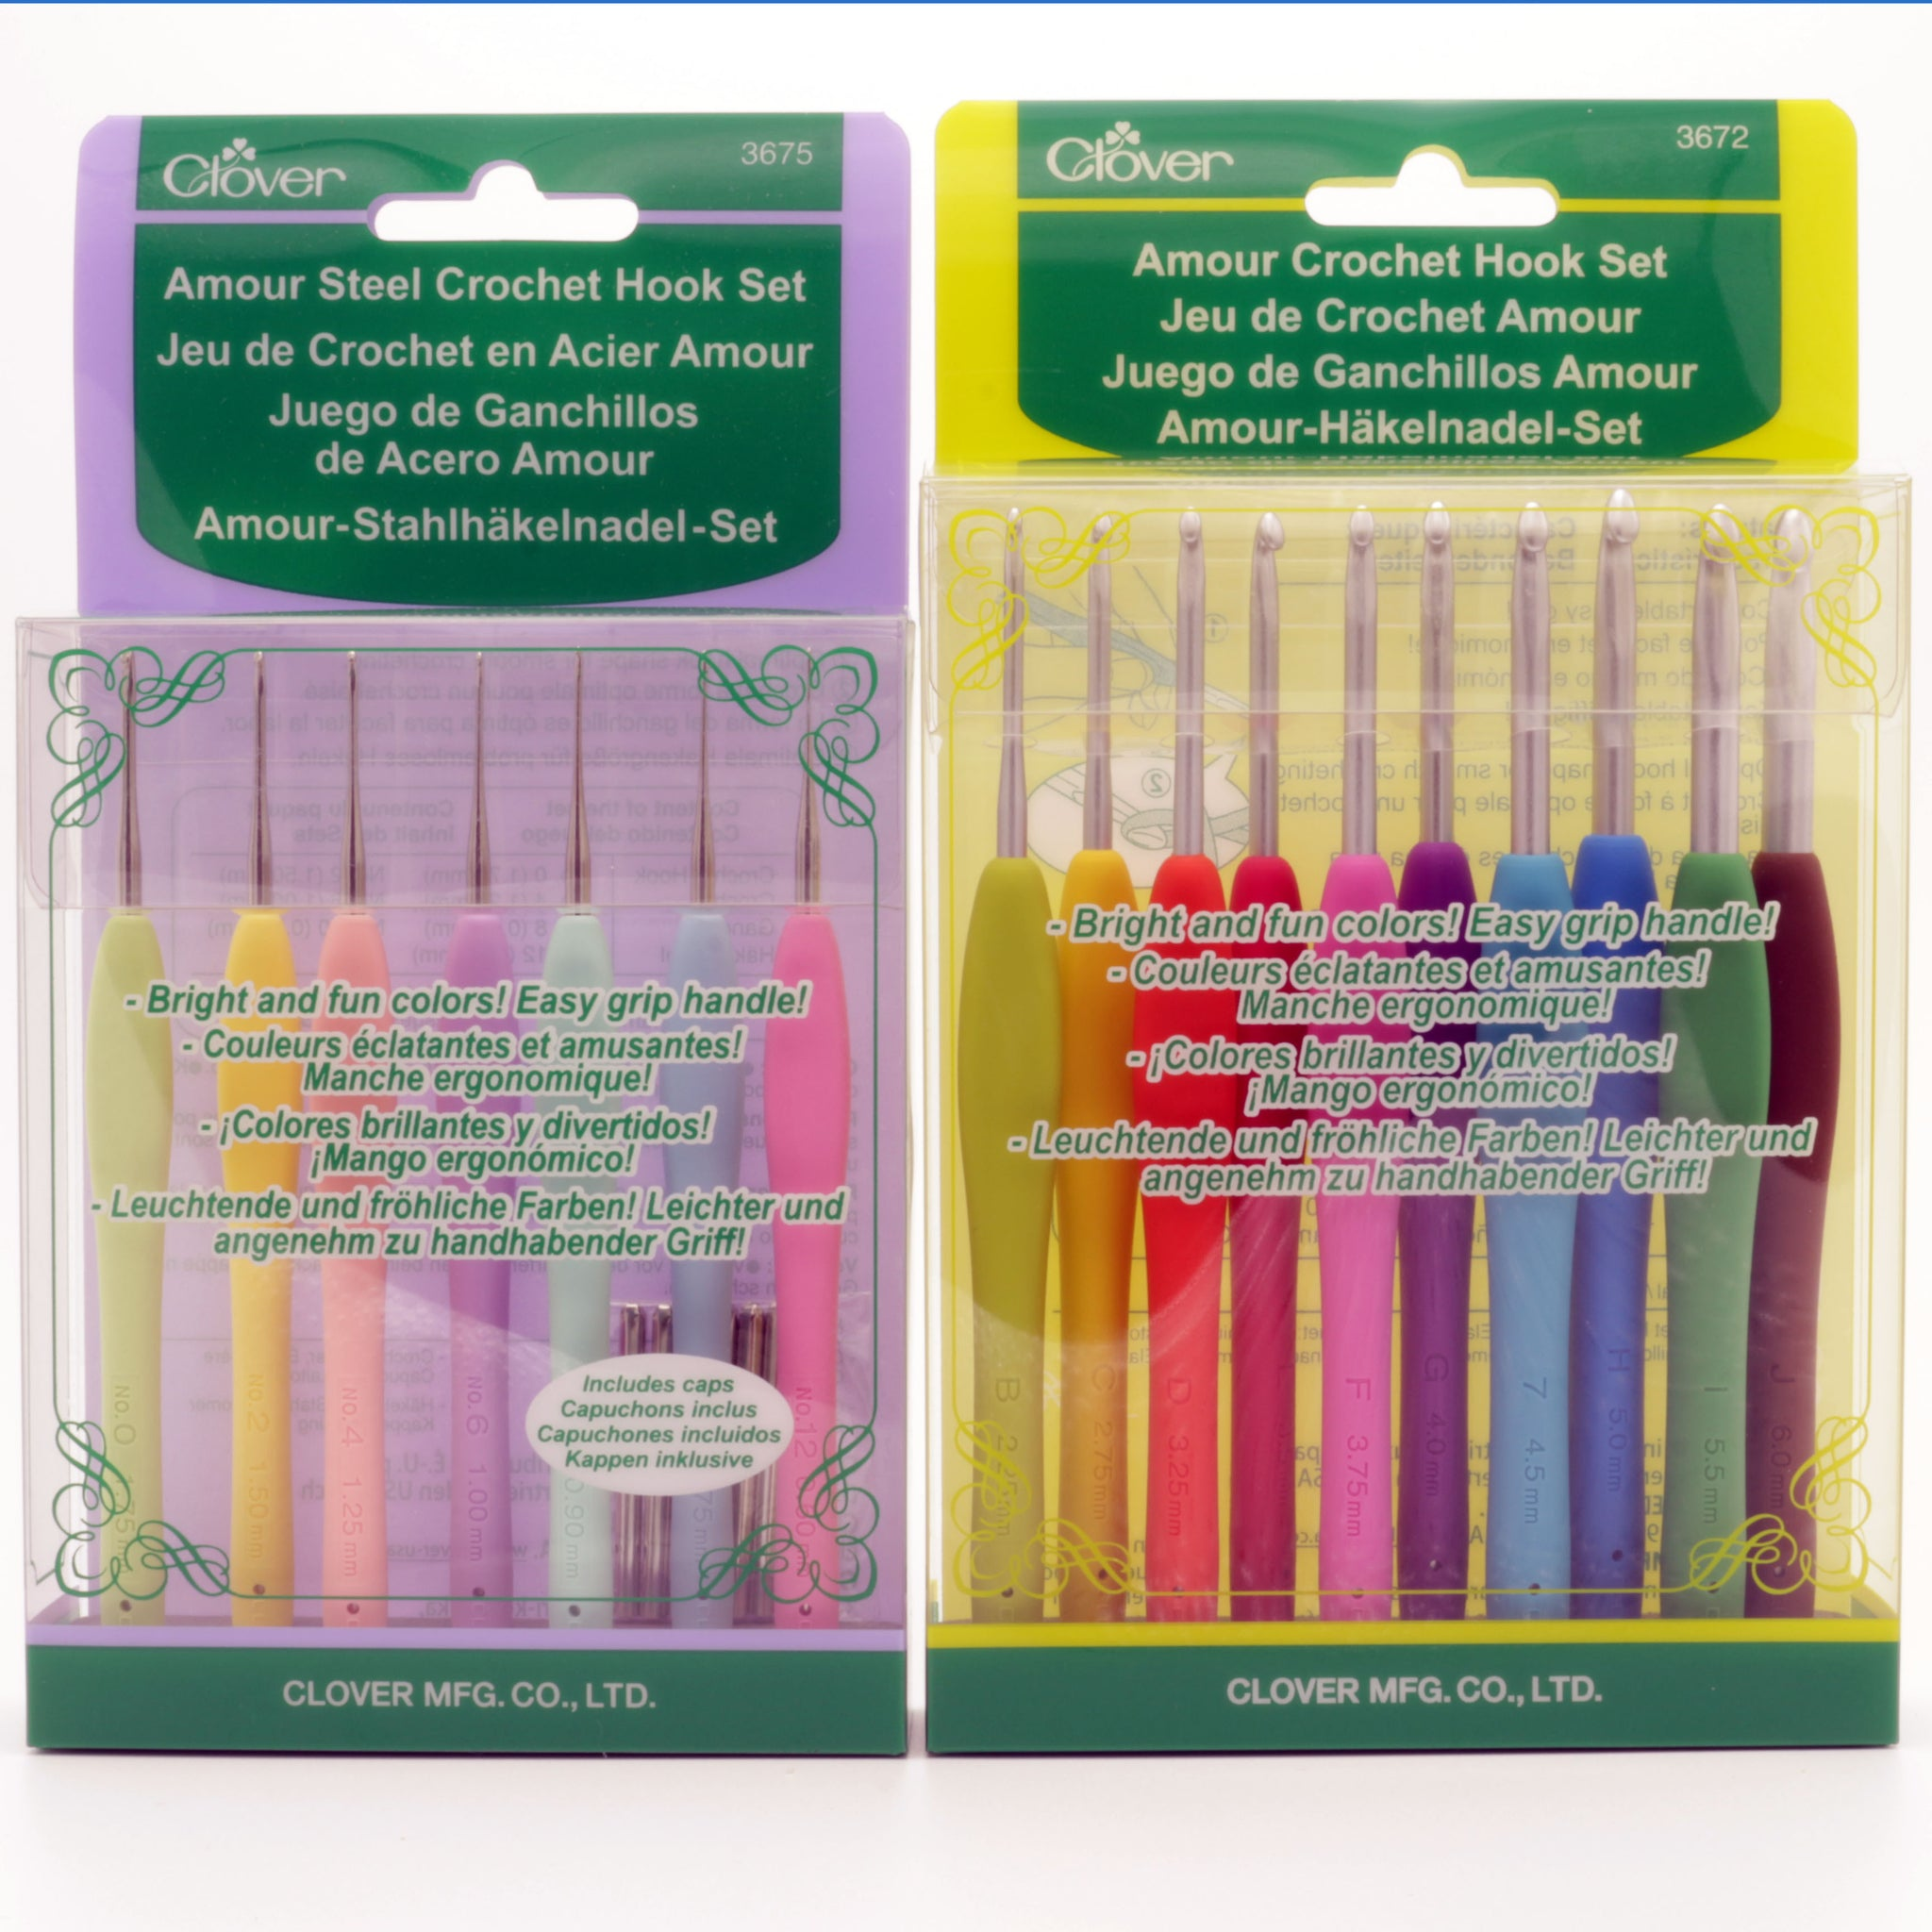 Clover Amour Crochet Hook Set Without Case Yarn Loop